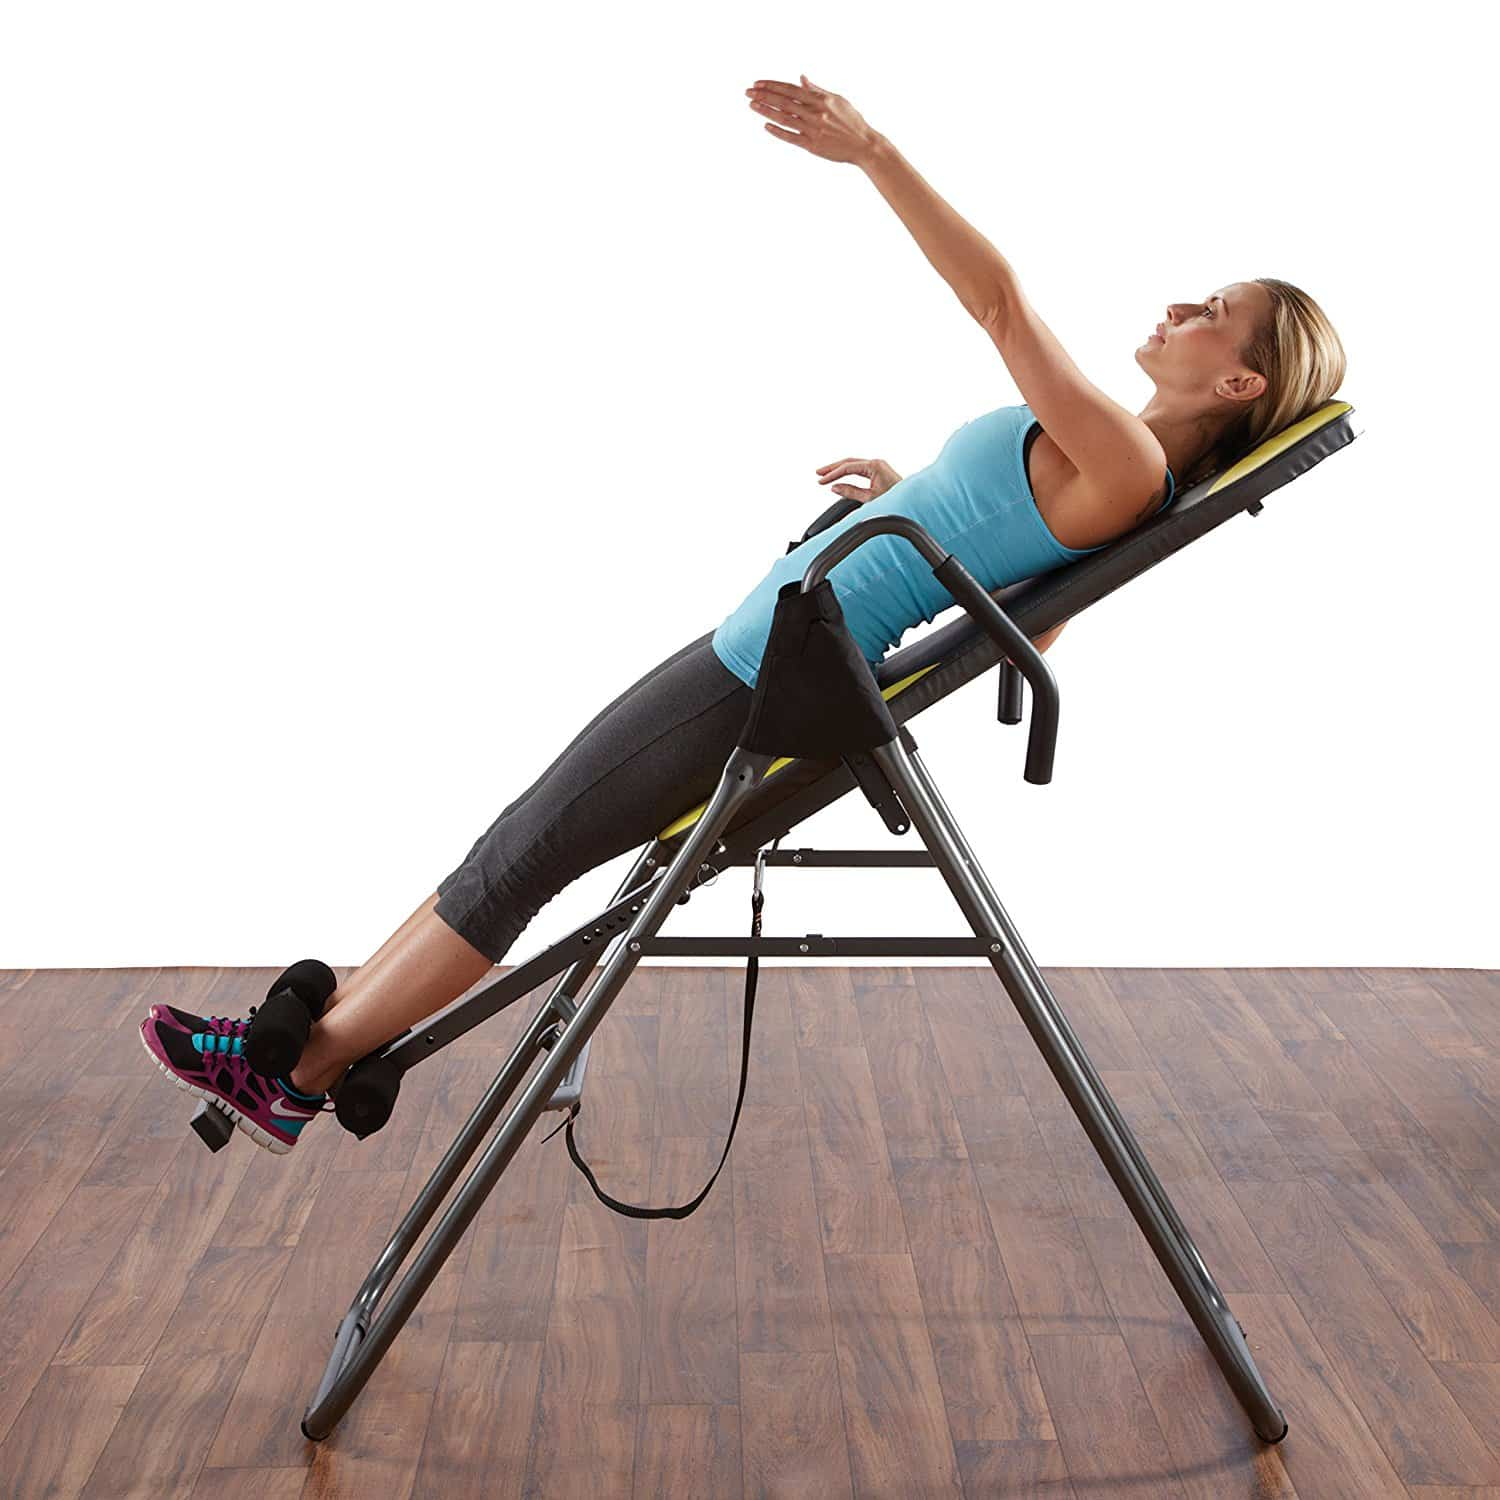 Sensational Top 10 Best Inversion Tables In 2019 Top Best Product Reviews Download Free Architecture Designs Licukmadebymaigaardcom